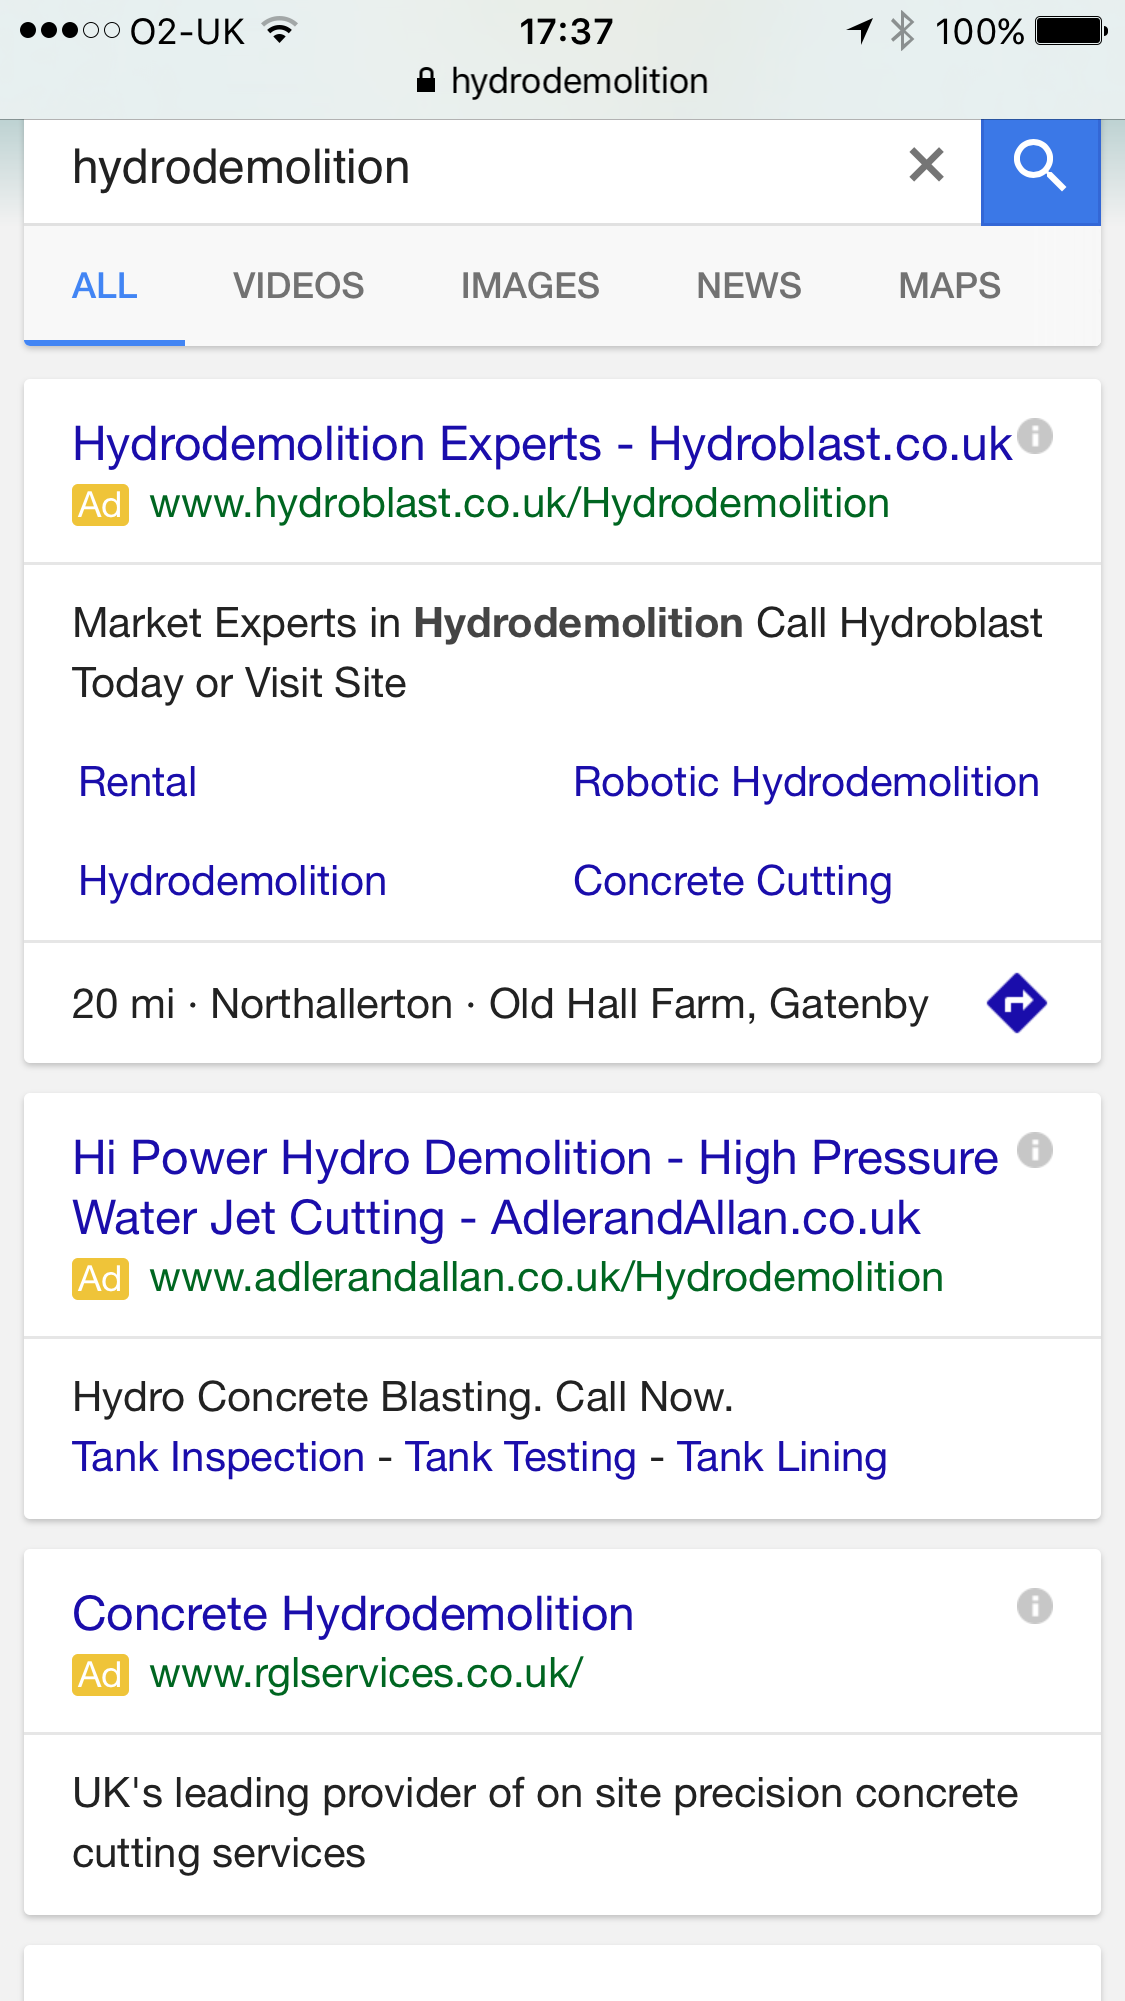 The Mobile Search Page Layout